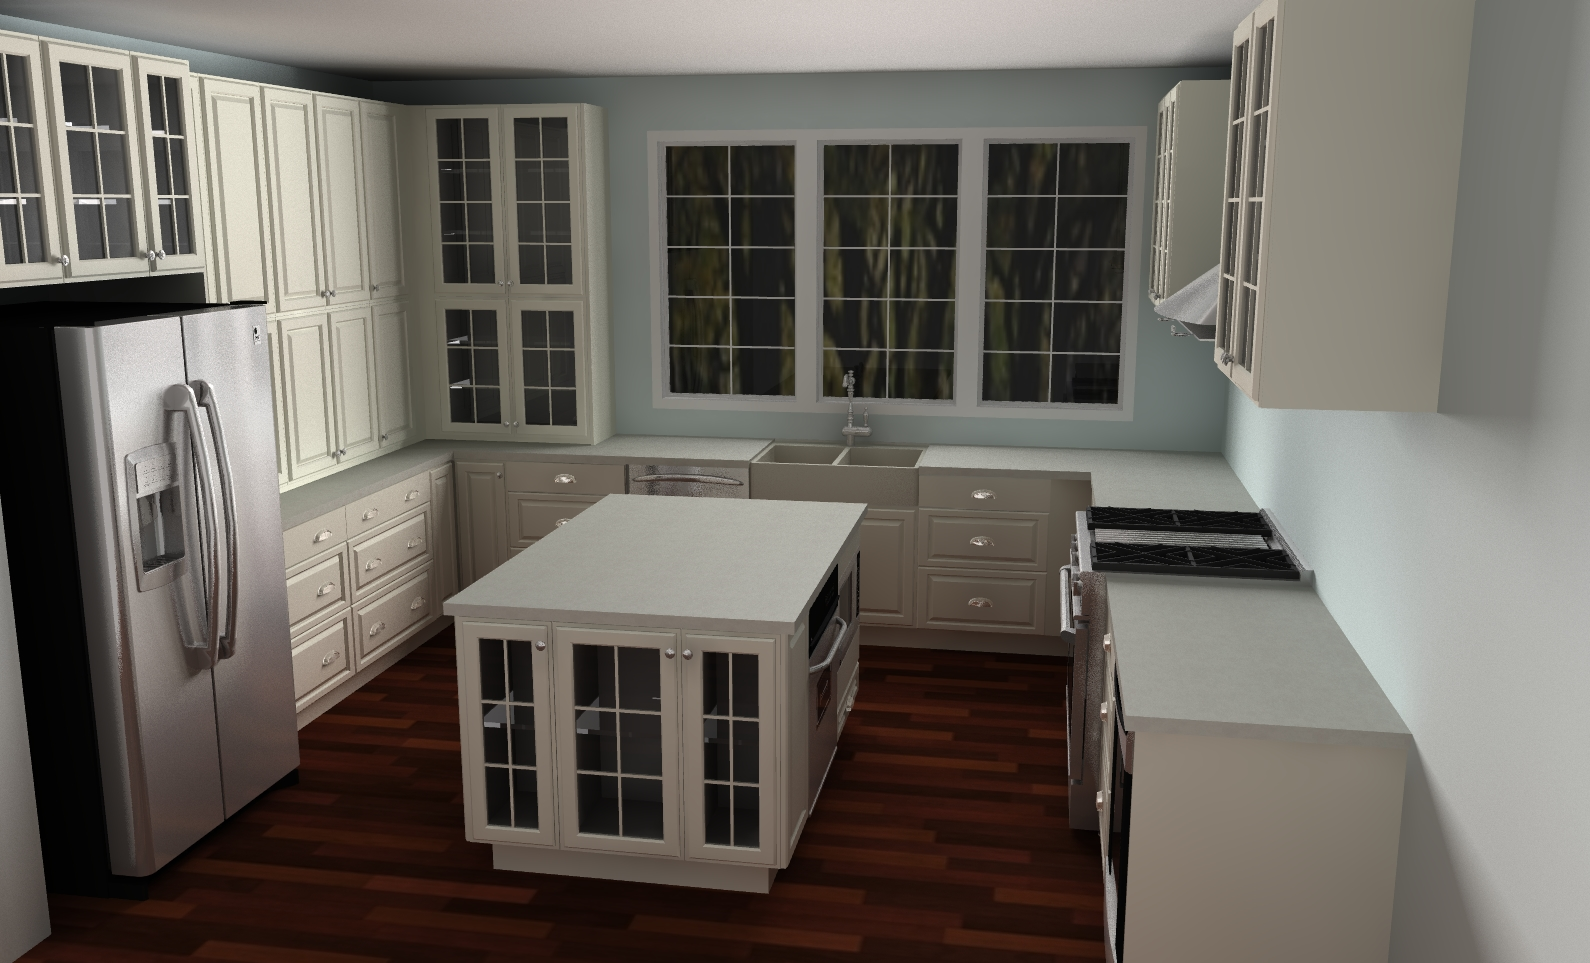 ikea small kitchen design ideas ikea kitchens design ideas ikea kitchen ideas Your Ikea Kitchen Design Can Be As Easy As 1 2 3 With Ikd